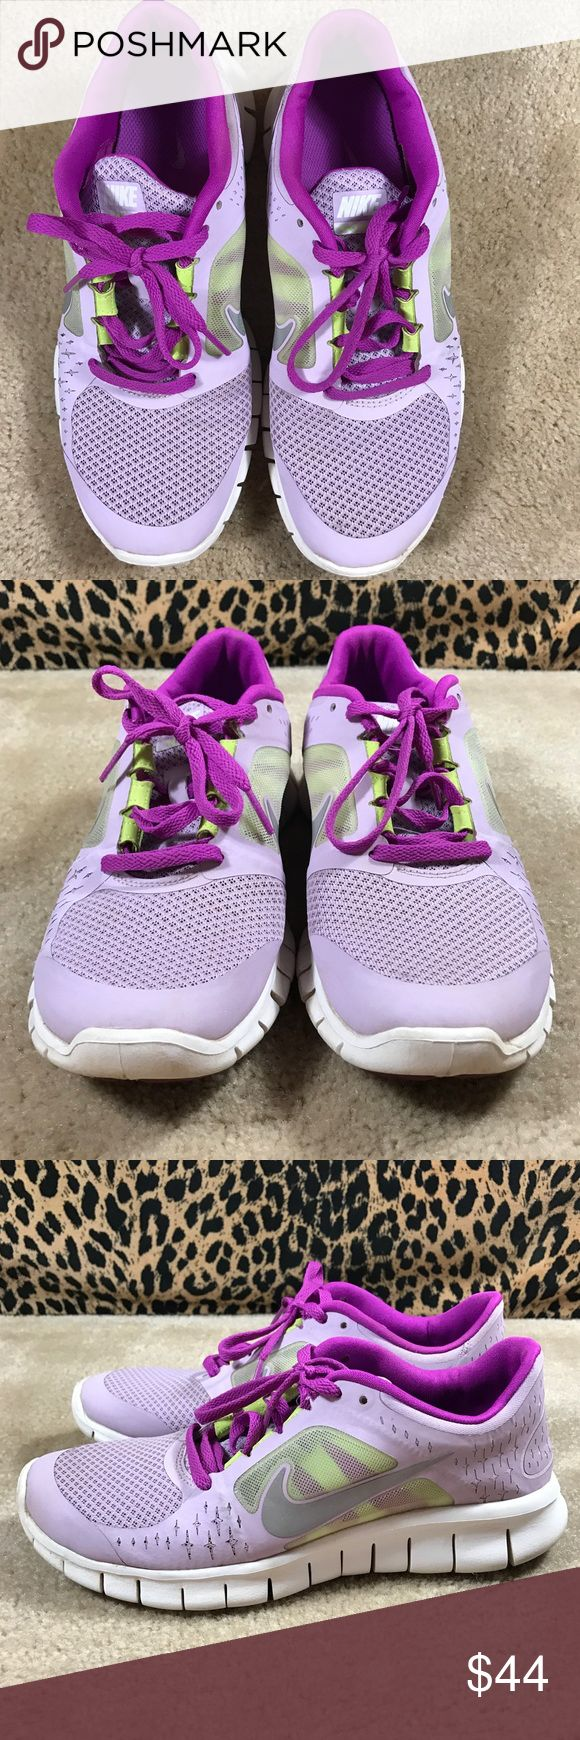 EUC Nike GirlsFree Run 3 512098-500 6.5Y Violet Wash/Silver-Magenta-Volt. Great mesh on outside reveals volt color under.  The Nike Free Run 3 Kids' Running Shoes are comfortable and highly flexible so your feet become stronger. The kids' running shoes provide a customized, barefoot-like feel. The lightweight upper features superior breathability with mesh panels, and a modified Nike Free outsole with flex grooves enhances the foot's flexibility and stability. Nike Shoes Sneakers